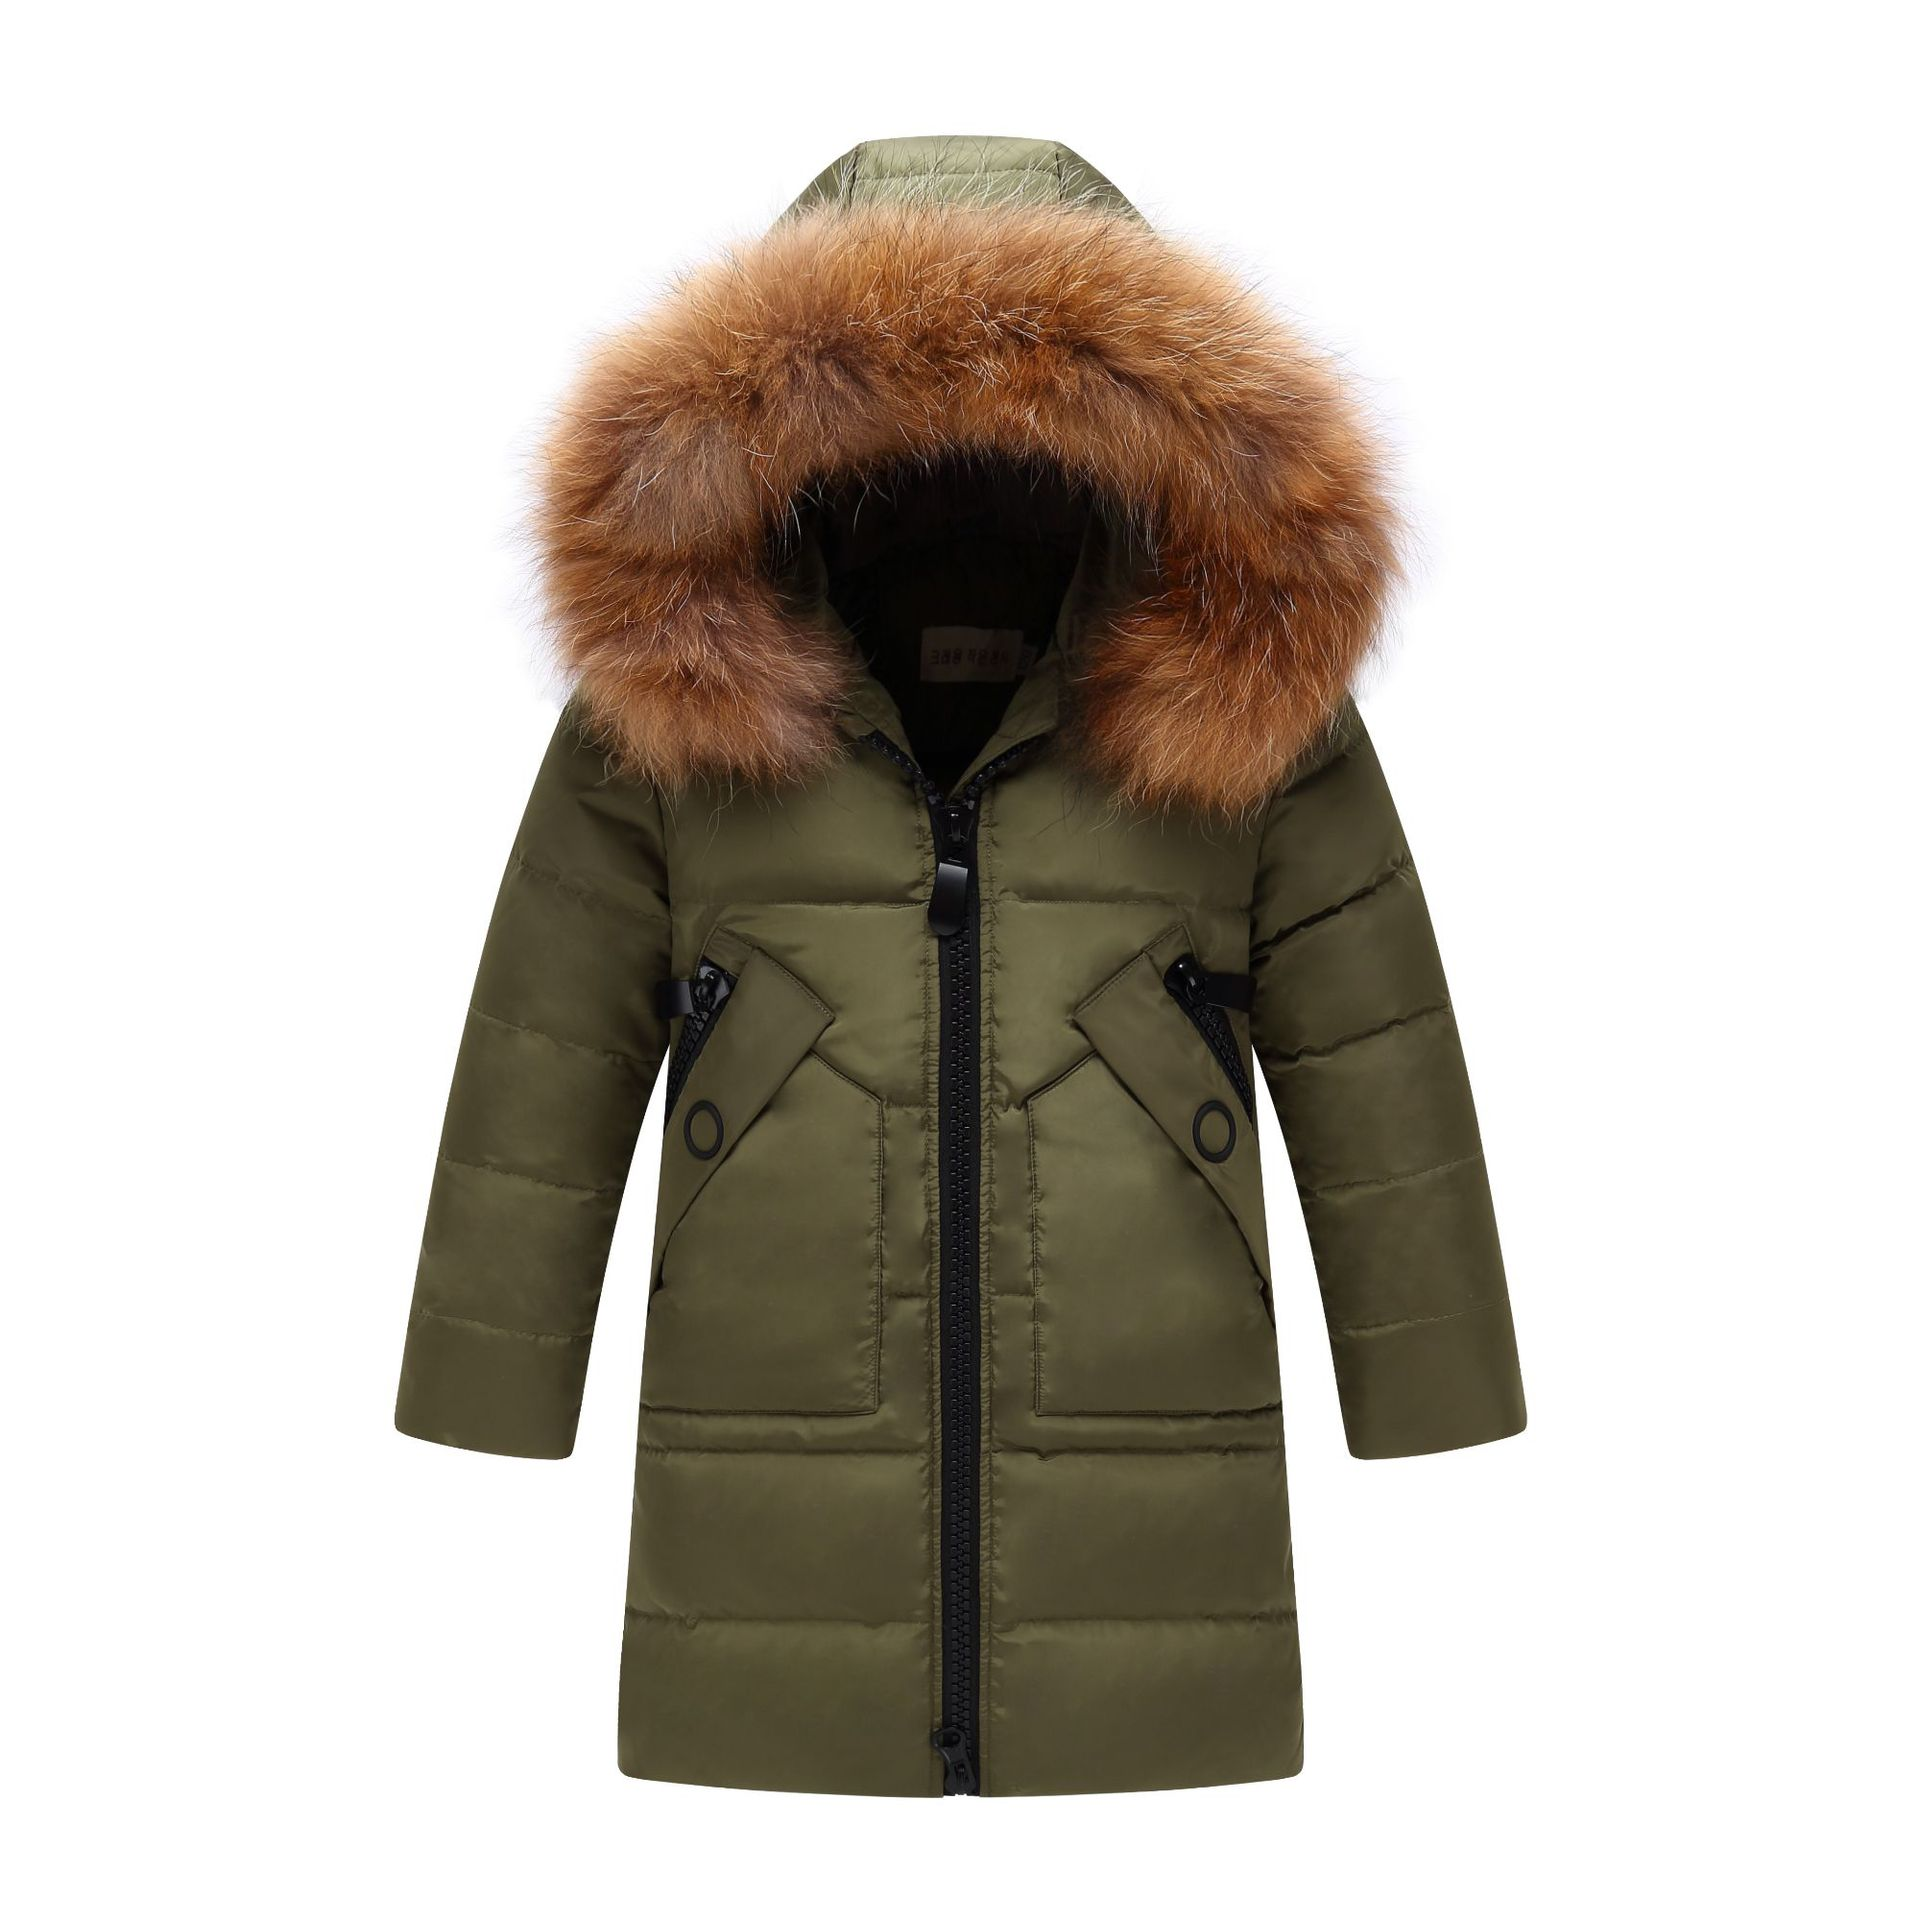 Image 3 - Children Winter Jacket Fur Collar Kids Duck Down Parkas Coat For Teens Girl 6 8 10 12 14 Years Outerwar Coat Dwq352-in Down & Parkas from Mother & Kids